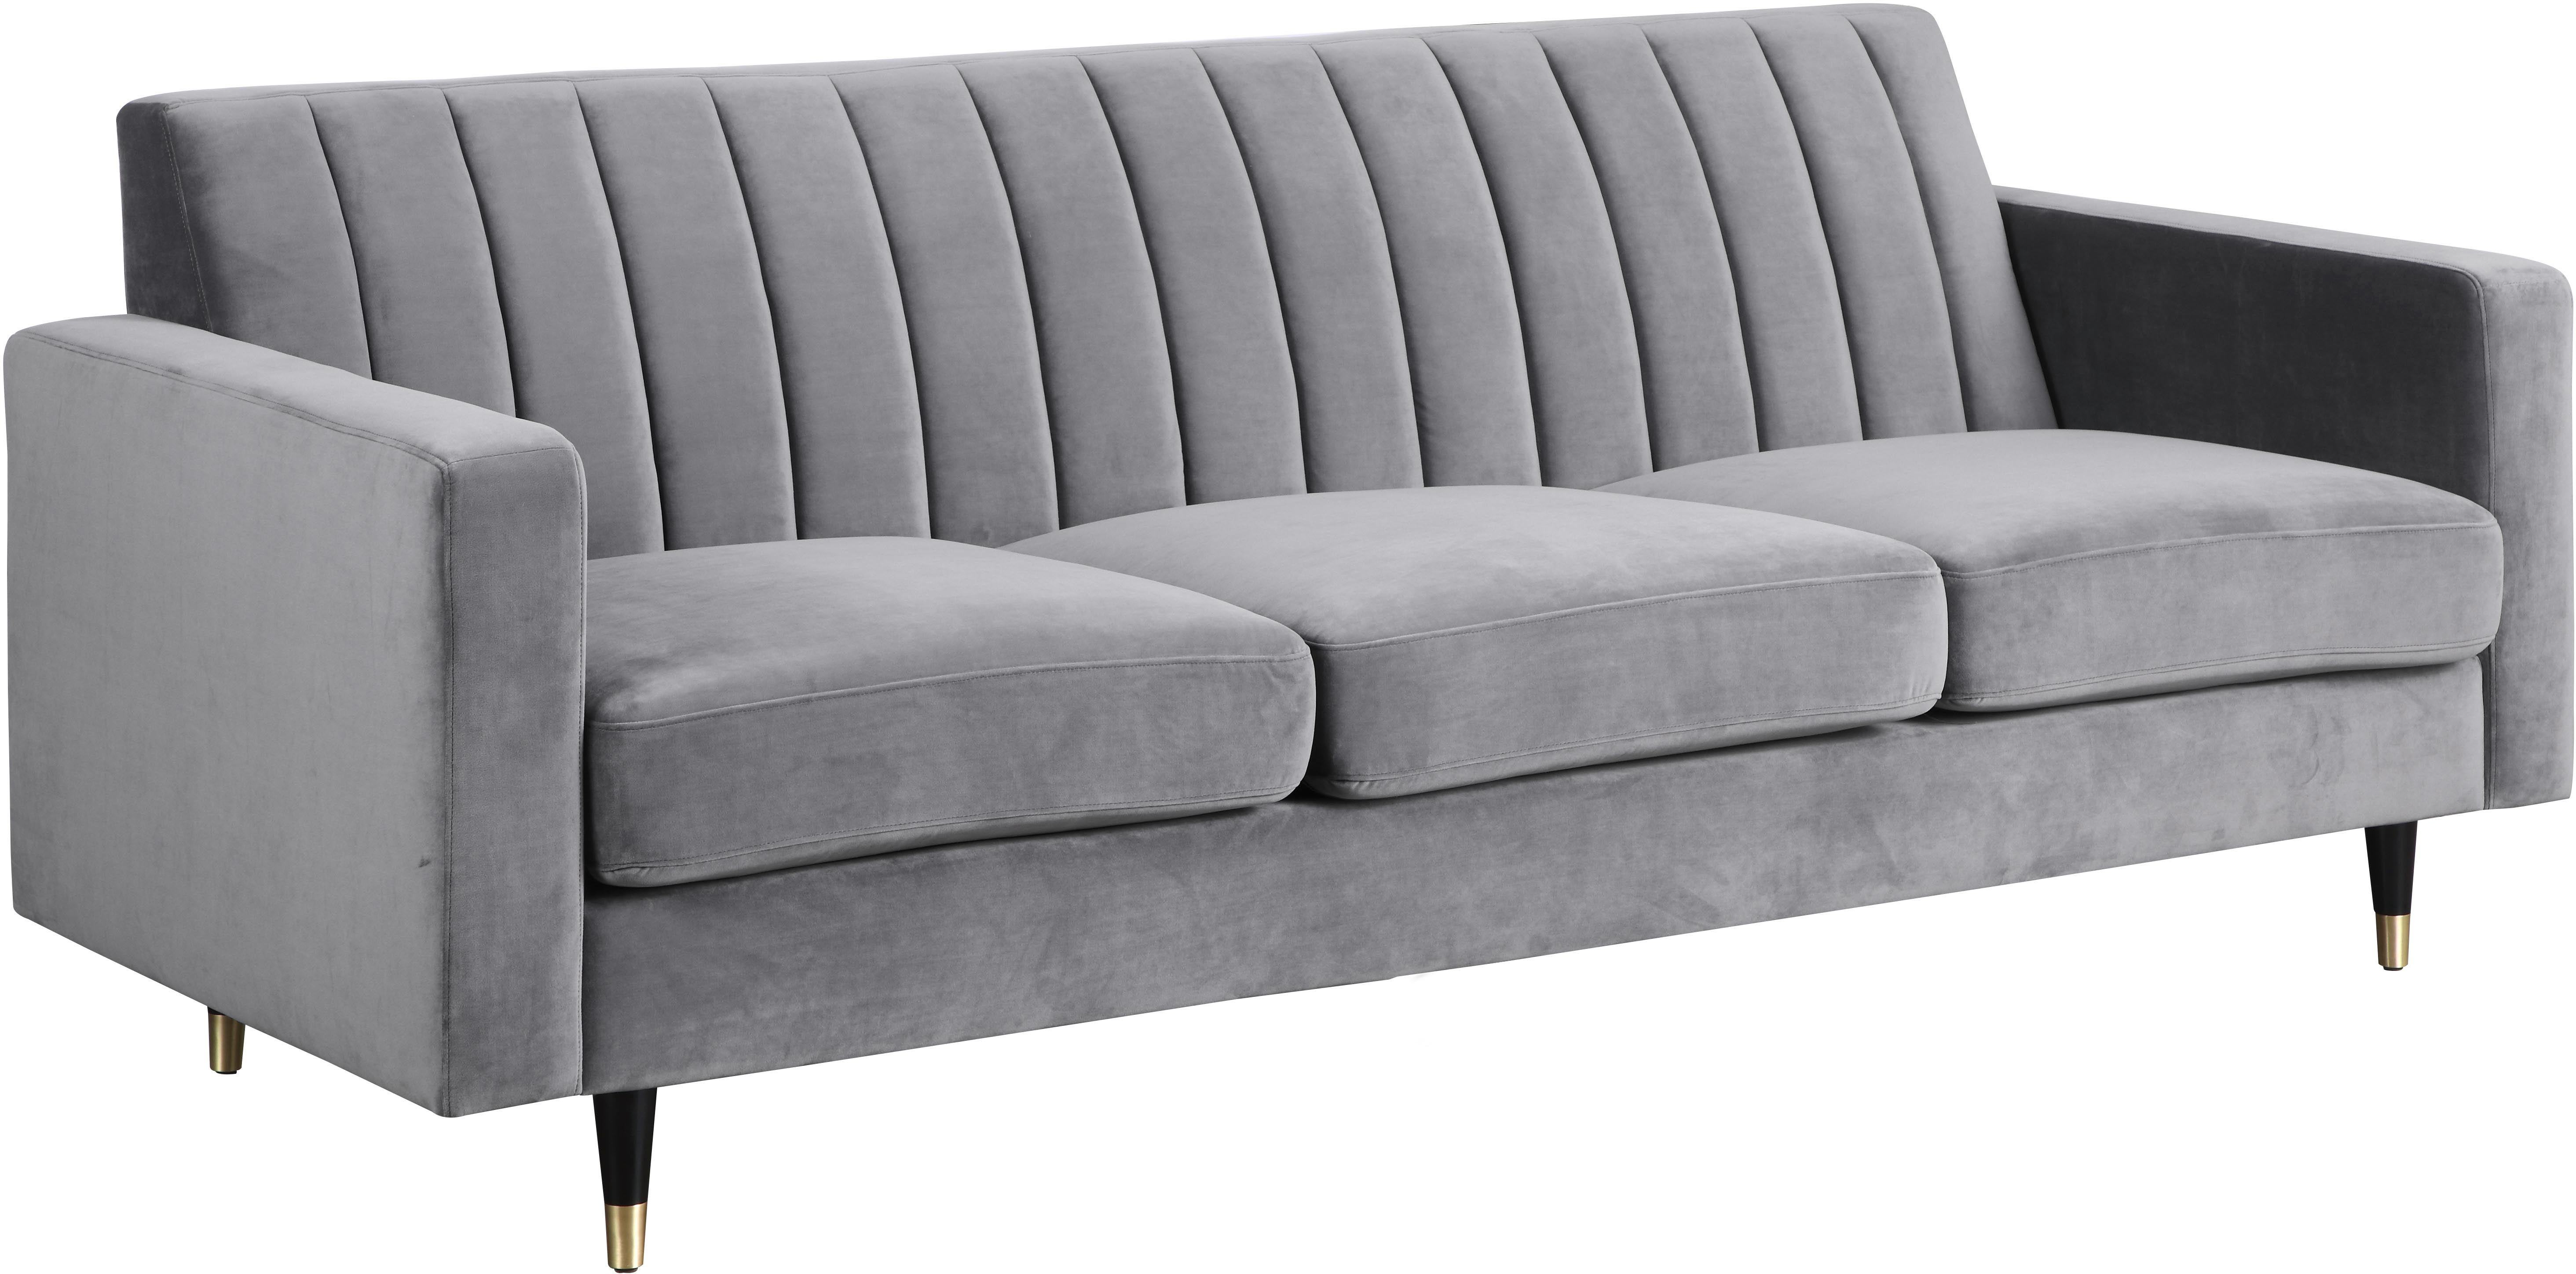 Phenomenal Meridian Furniture Lola Grey Velvet Sofa Caraccident5 Cool Chair Designs And Ideas Caraccident5Info